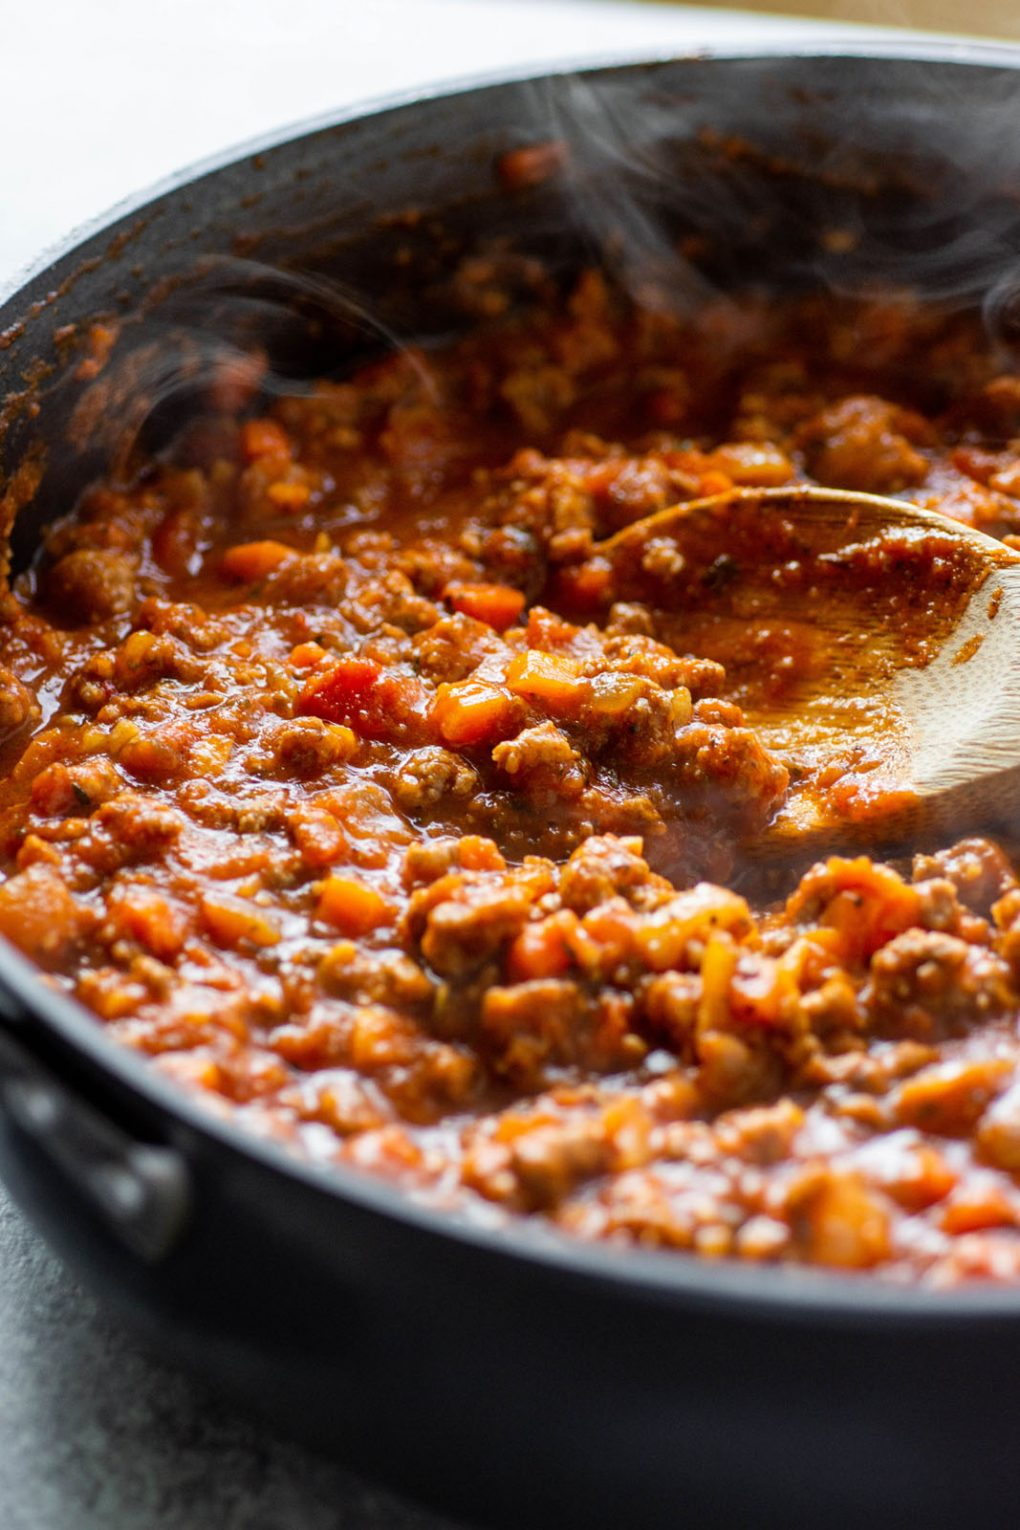 Side angle view of a skillet of pumpkin ragu pasta sauce with a wooden spoon dipping into the steaming sauce.